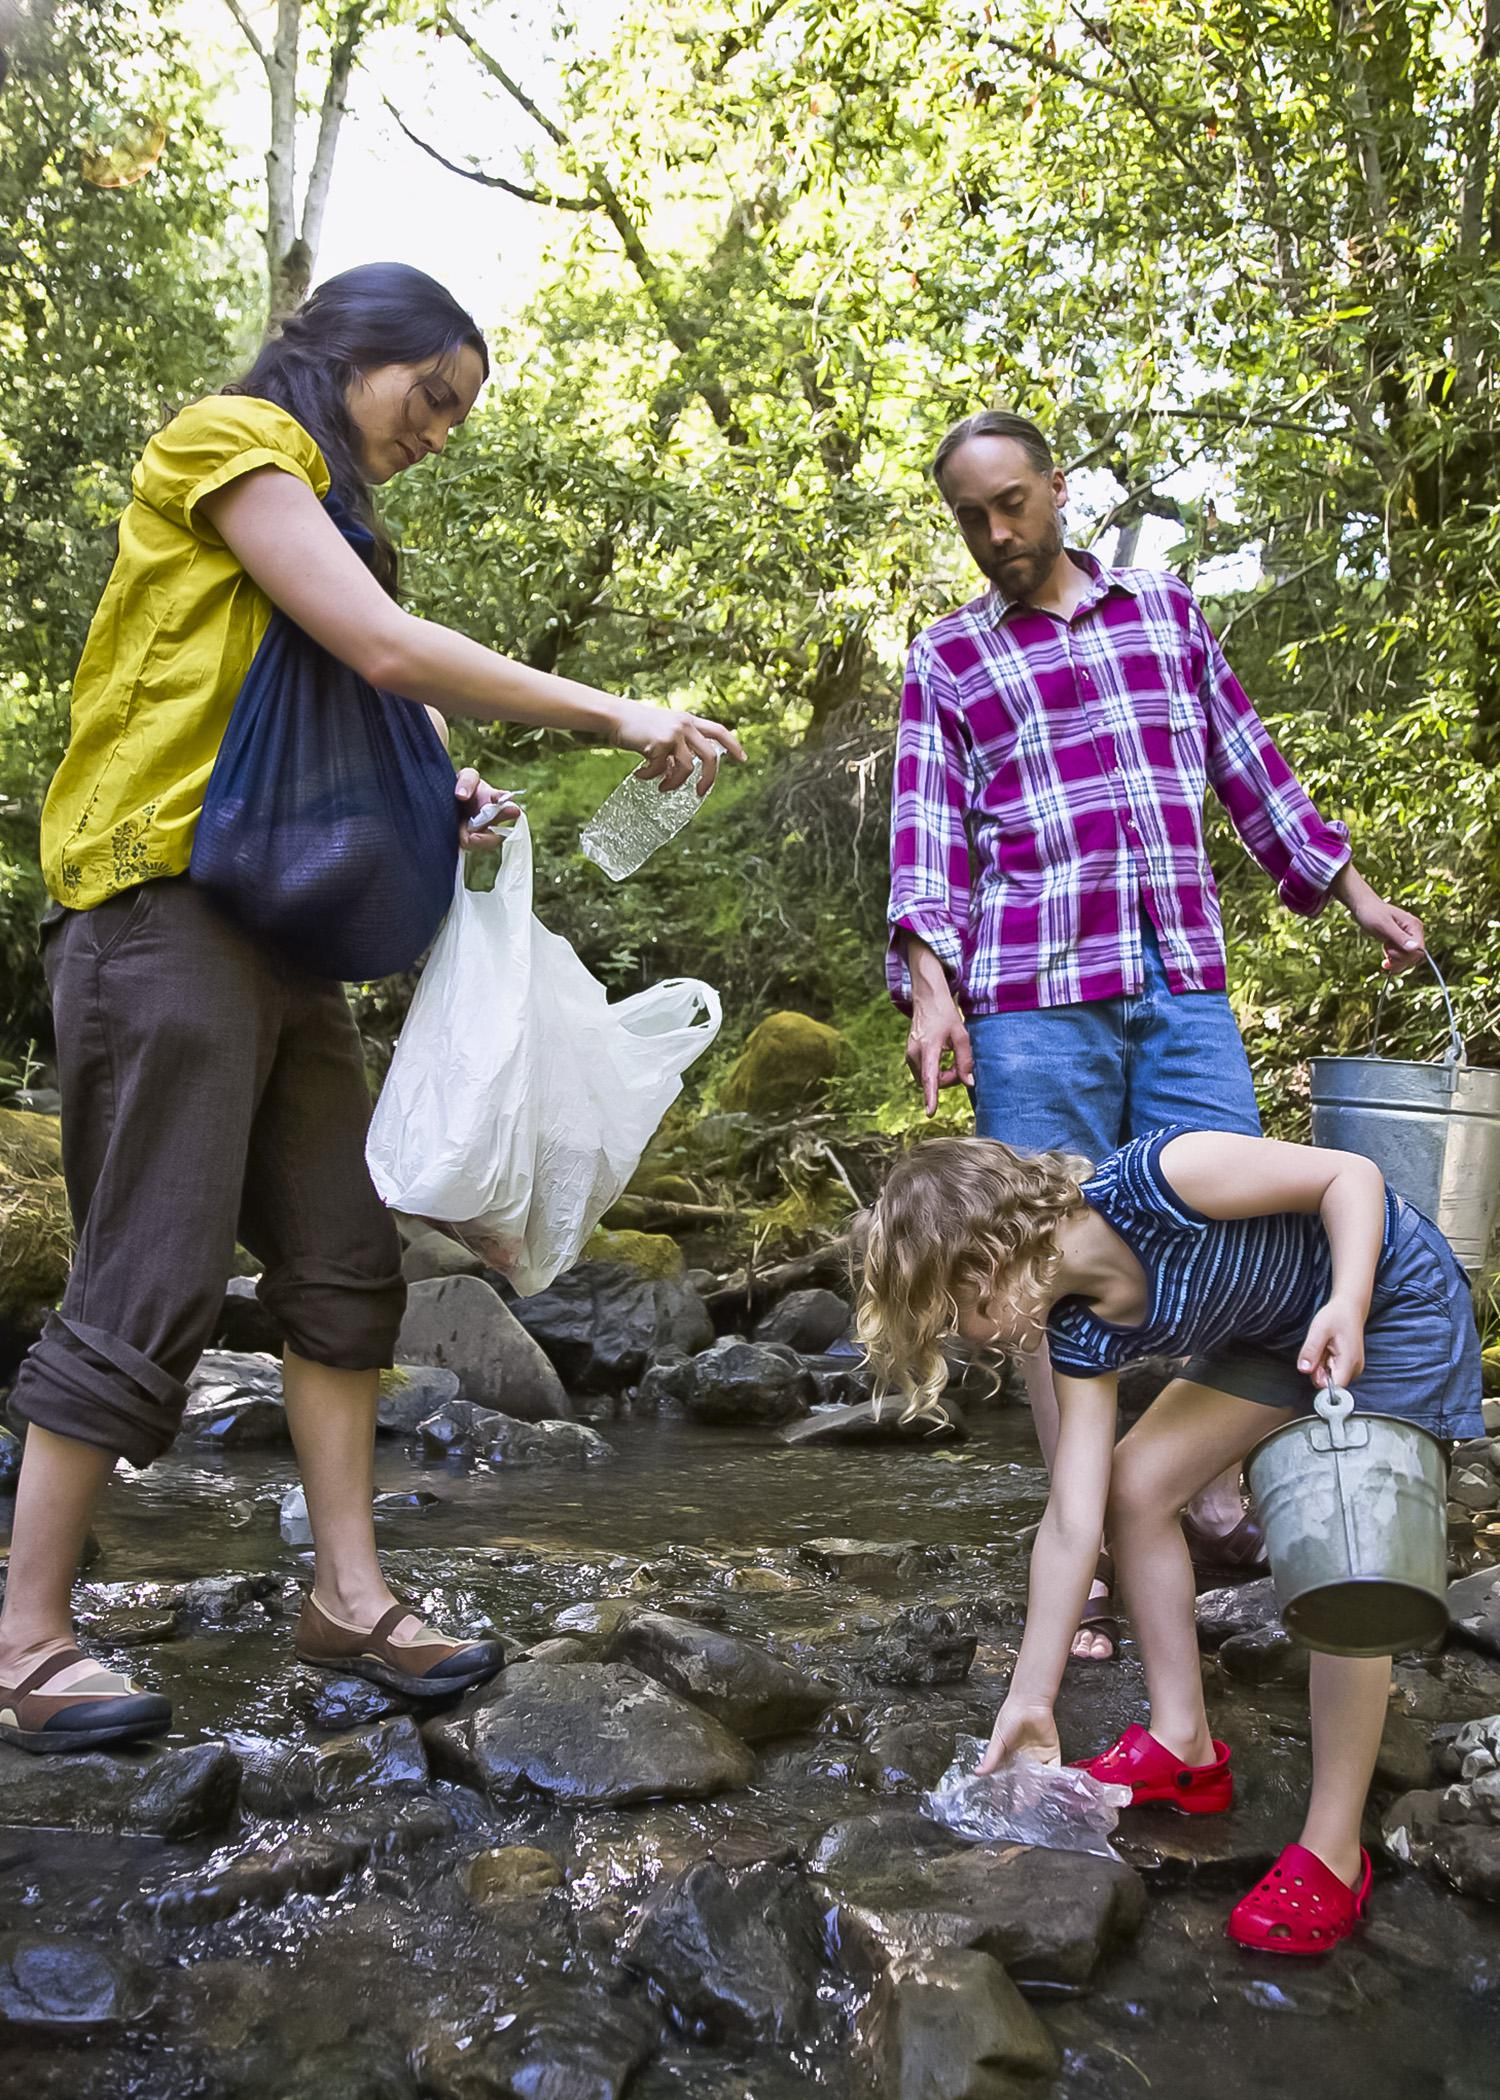 Properly disposing of trash and cleaning up litter keep the outdoors safe for wildlife, helps preserve water quality and makes communities more attractive. (Photo by Thinkstock)